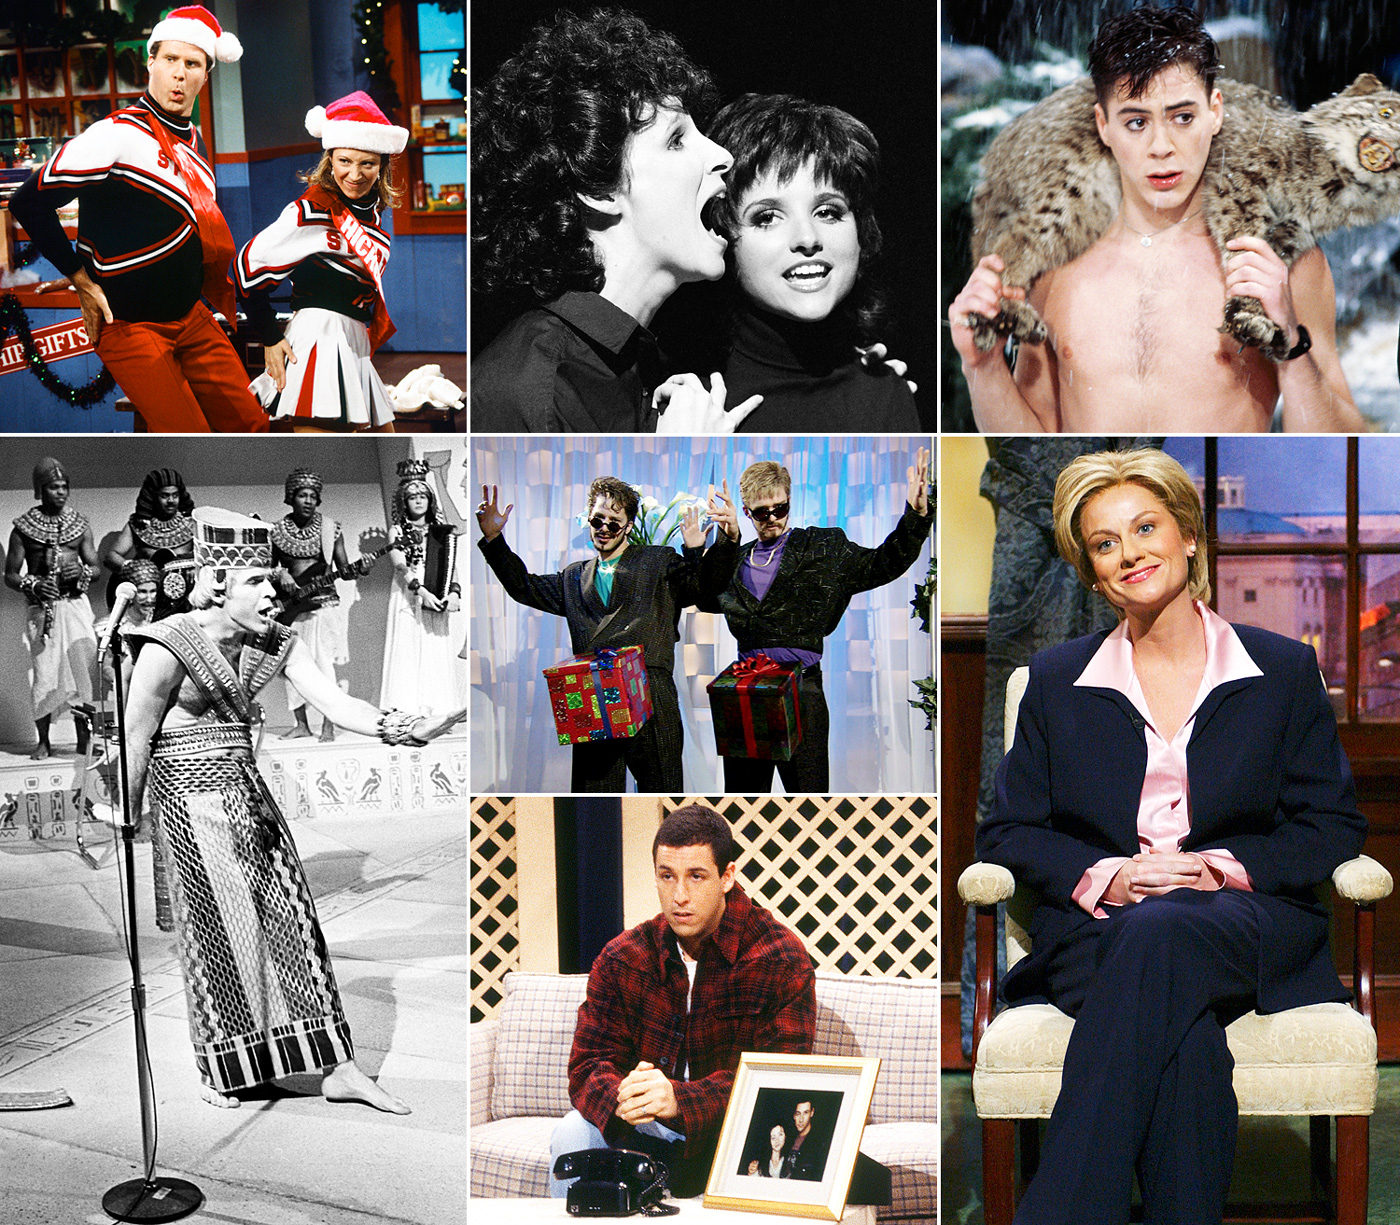 World pictures of the days of our lives cast members past and present